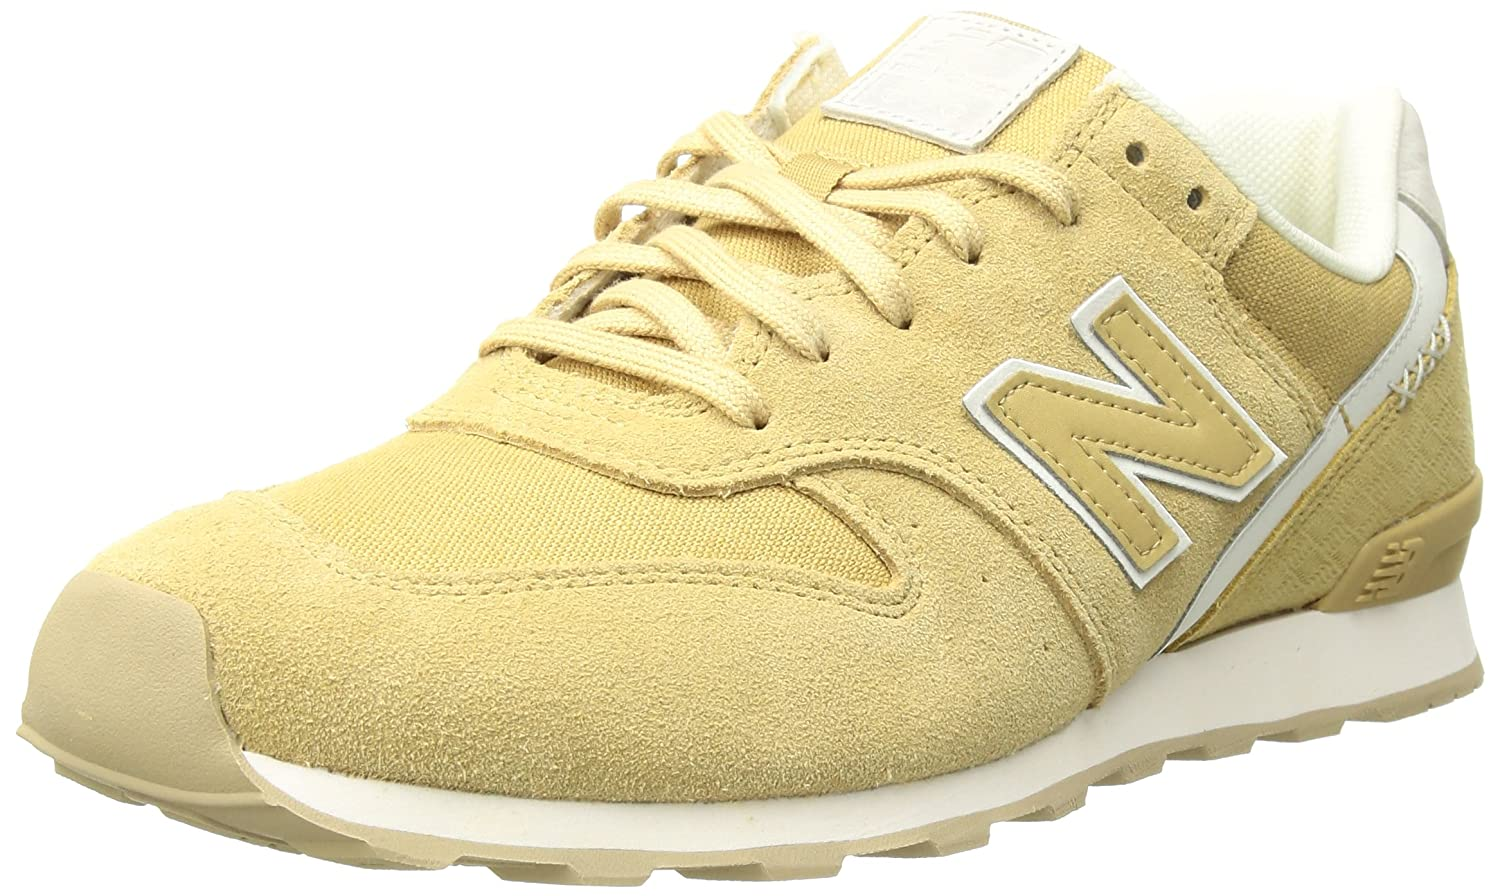 New Balance Women's 696 v1 Sneaker B0751GMFXH 7.5 B(M) US|Toasted Coconut/Sea Salt